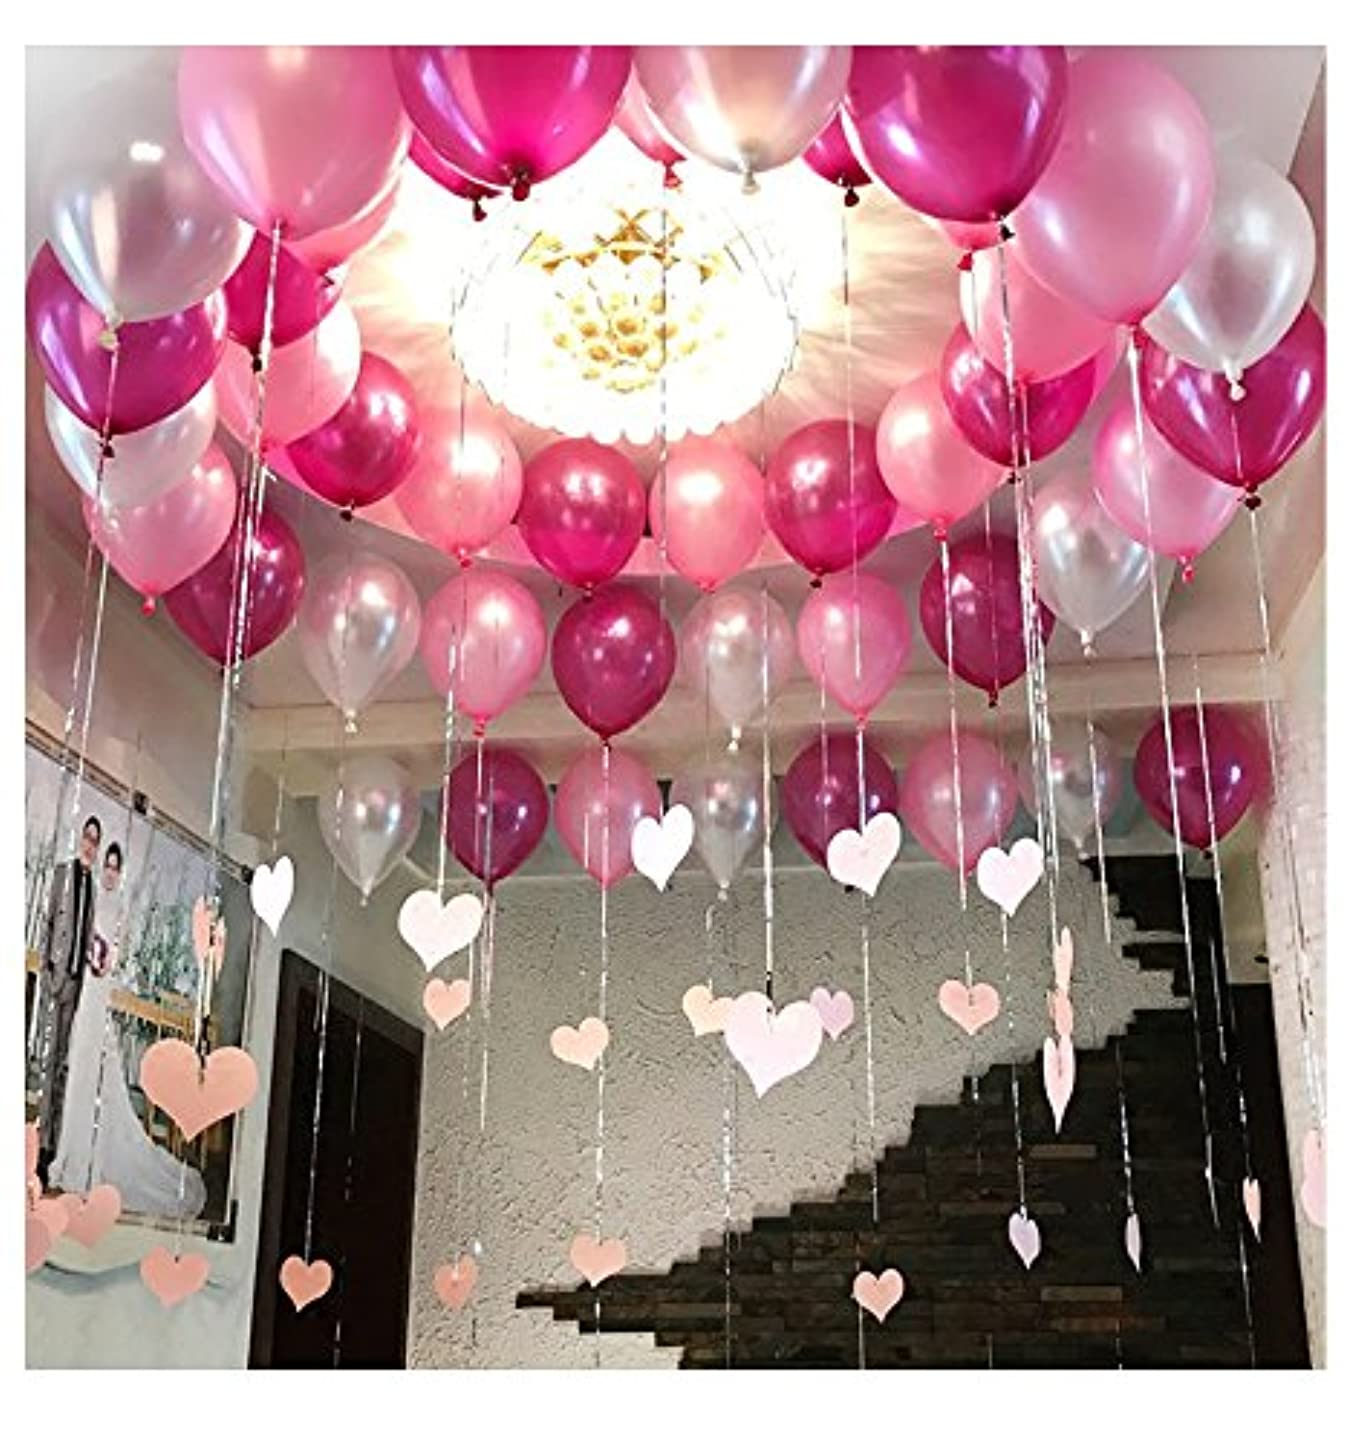 Pearl Balloon Thicked Latex Balloons Party Decor Wedding Birthday Helium Thickening Party Balls (Pink&Red Rose&Silver) 72Pcs/Pack 12 Inch 2.8g rcejdgzwezef